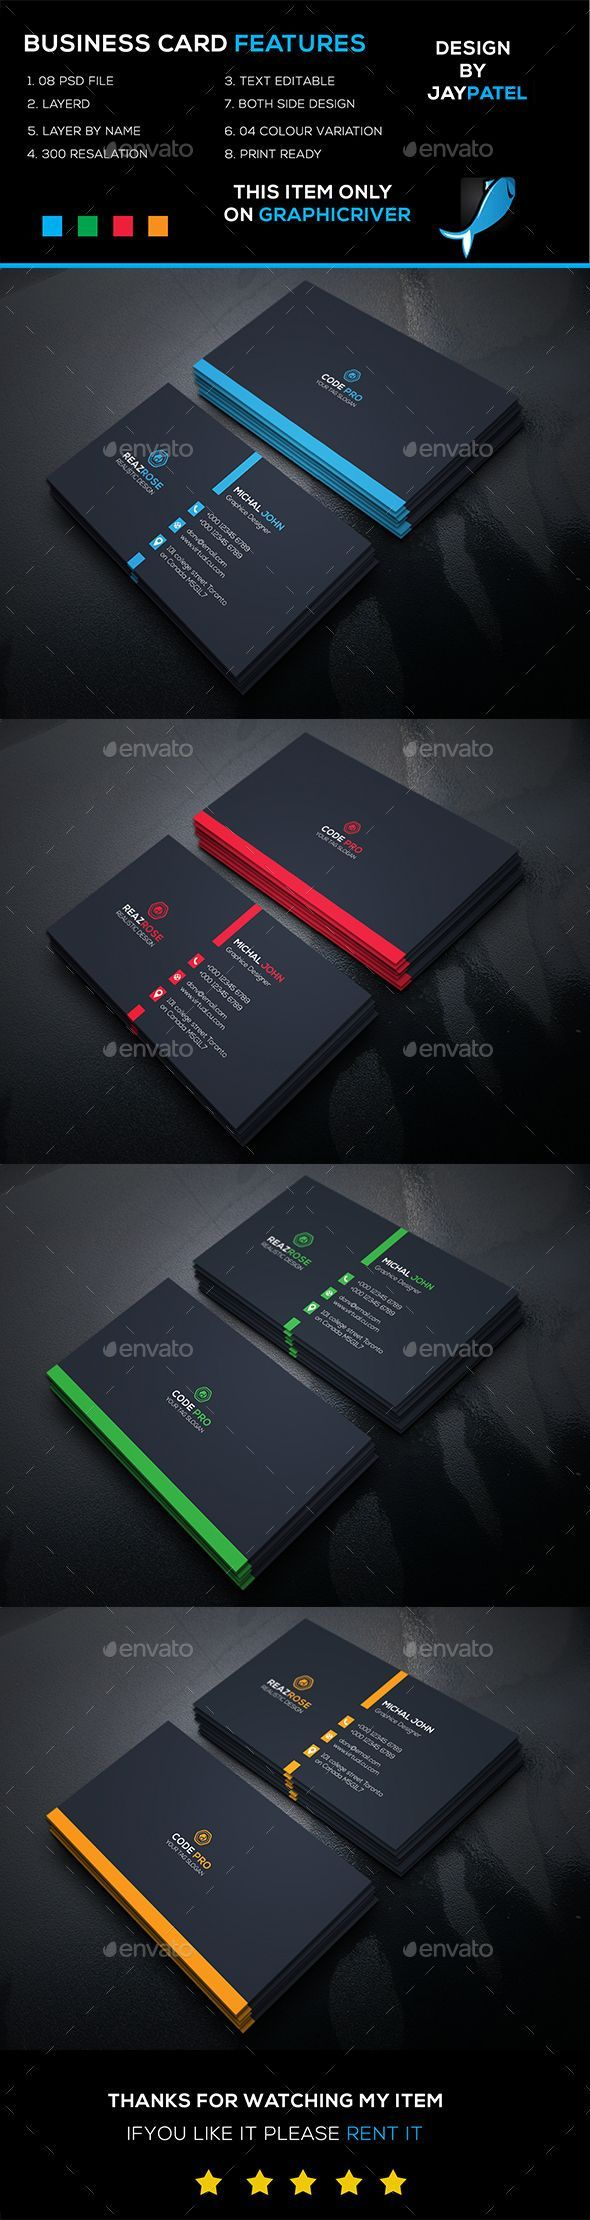 12427 best Best Business Cards images on Pinterest | Business card ...